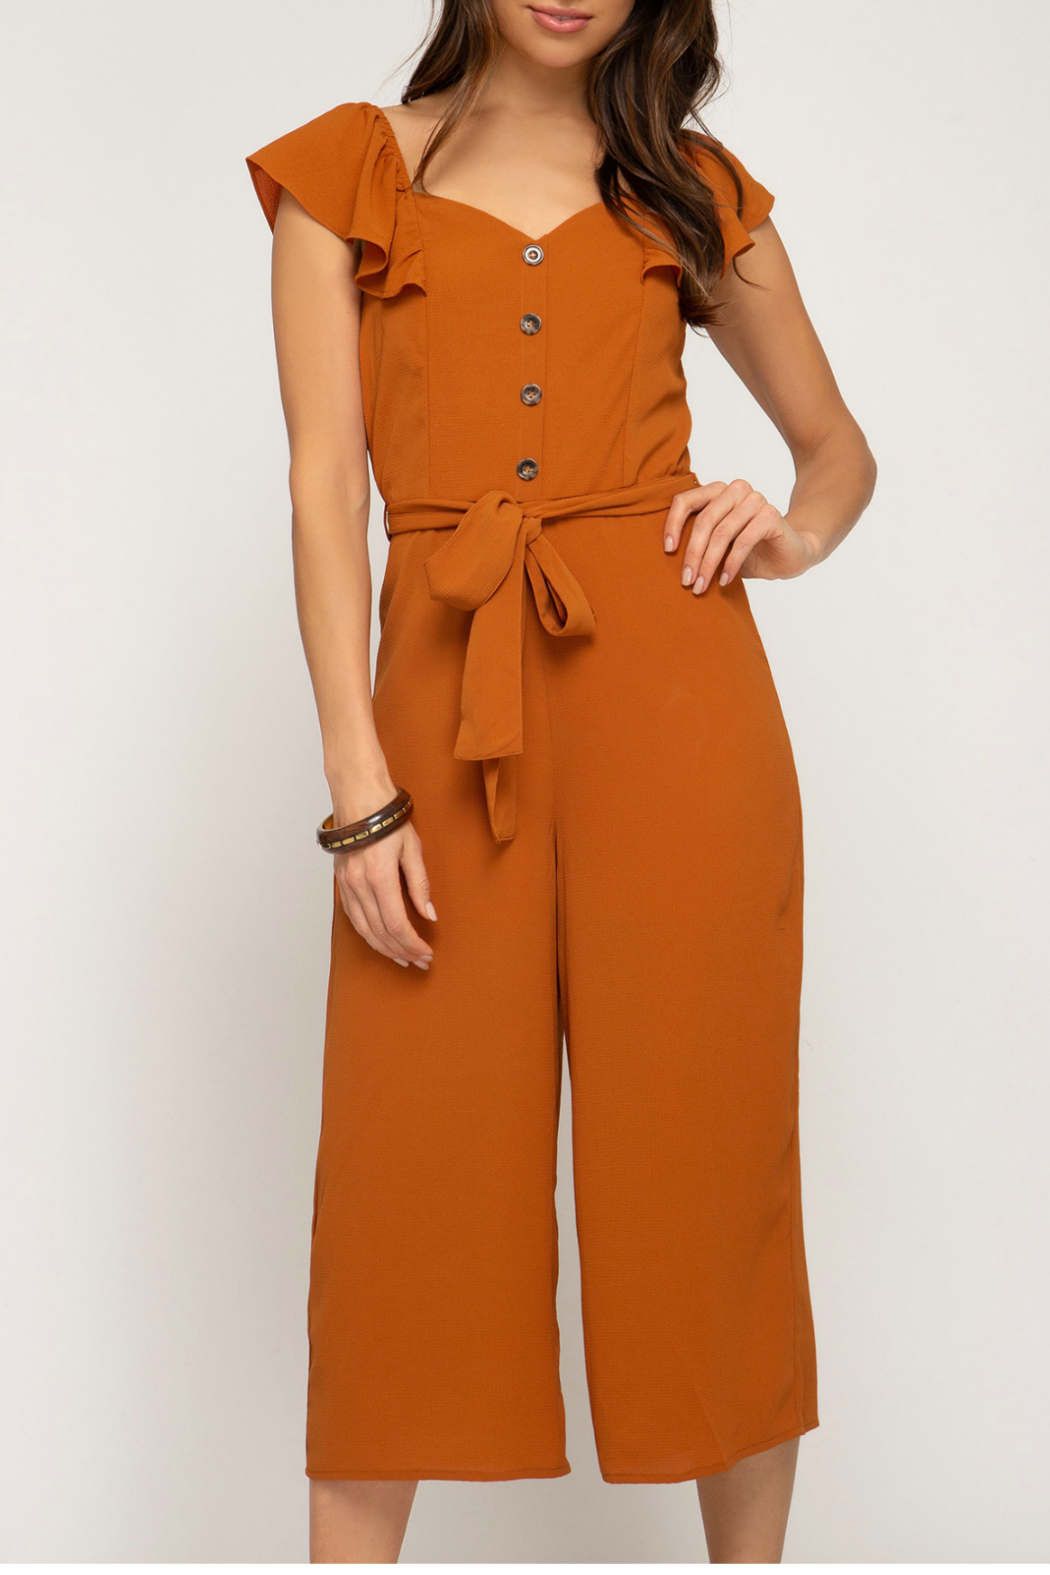 She + Sky Woven Culotte Jumpsuit - Main Image